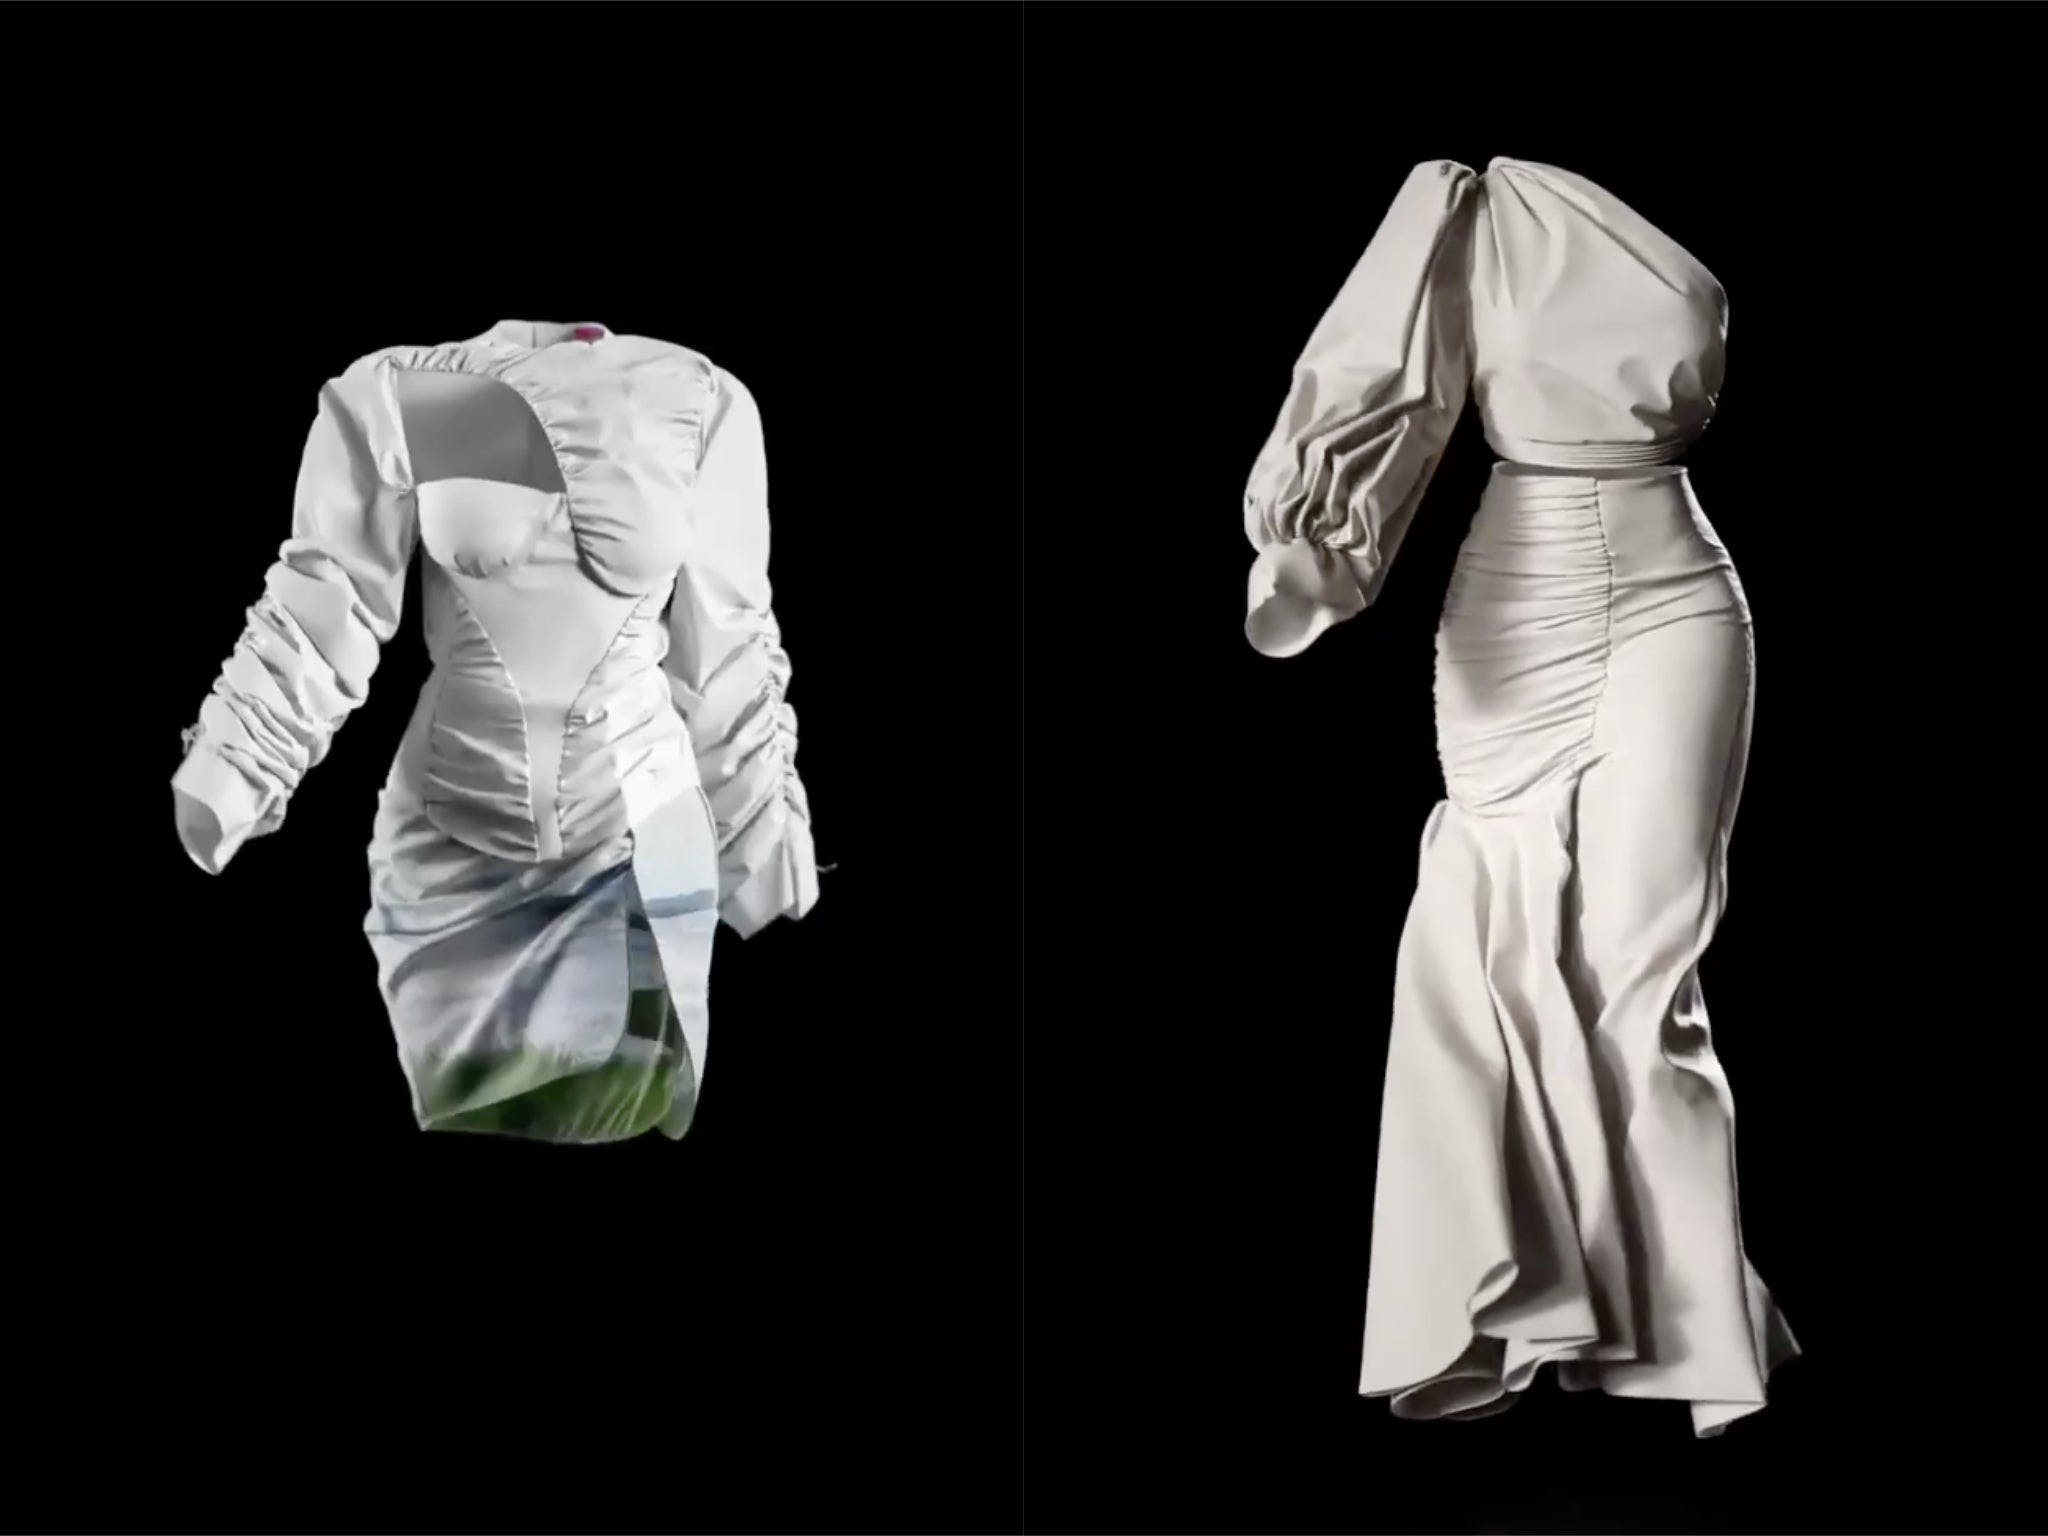 HANIFA'S 3D COLLECTION GOES LIVE ON INSTAGRAM